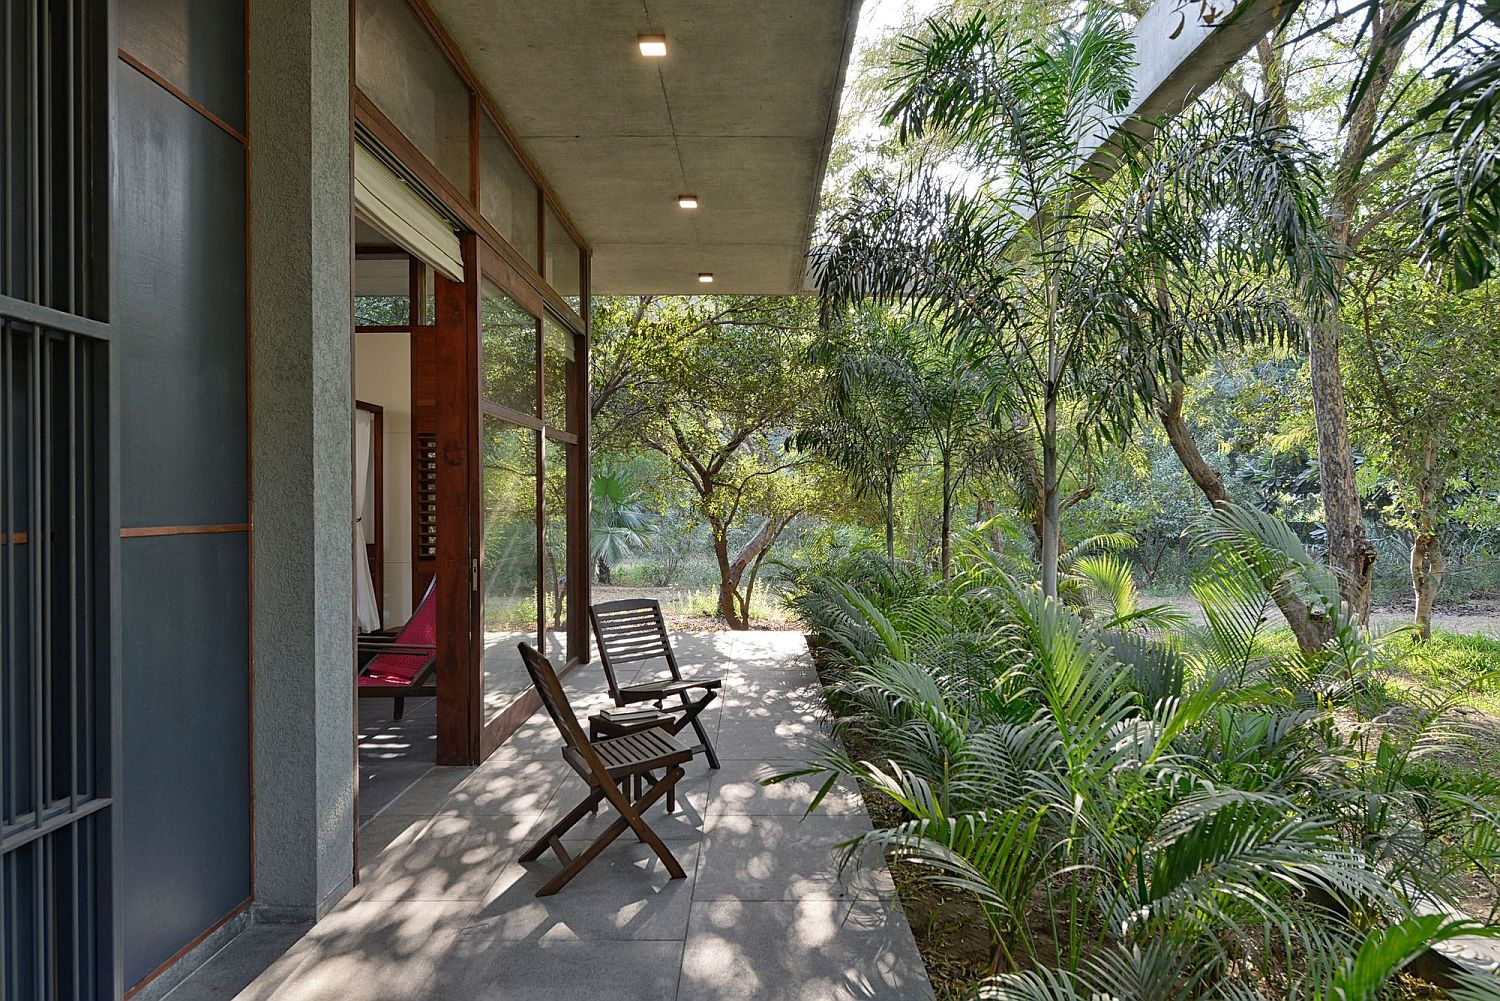 Small-deck-around-the-house-flowing-into-the-rear-yard